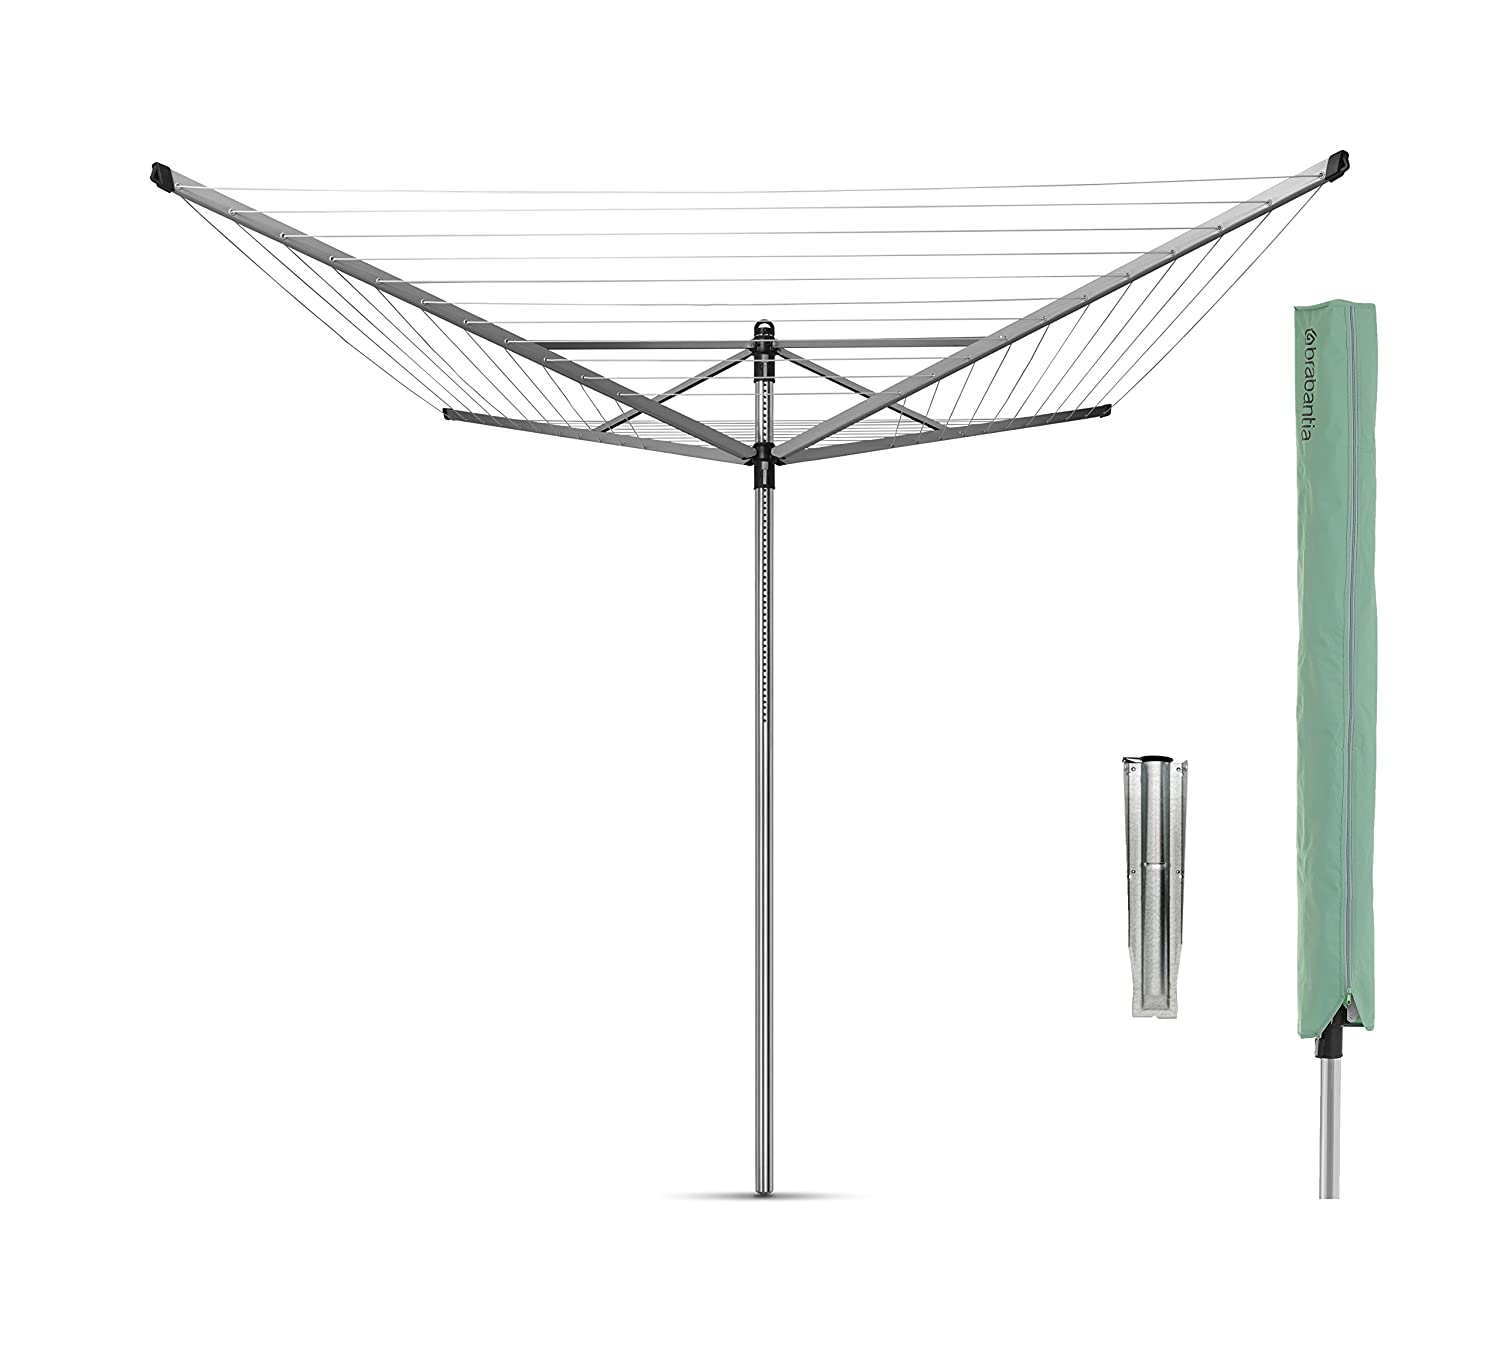 Silver Brabantia Lift-O-Matic Rotary Airer Washing Line with 45 mm Metal Soil Spear 40 m